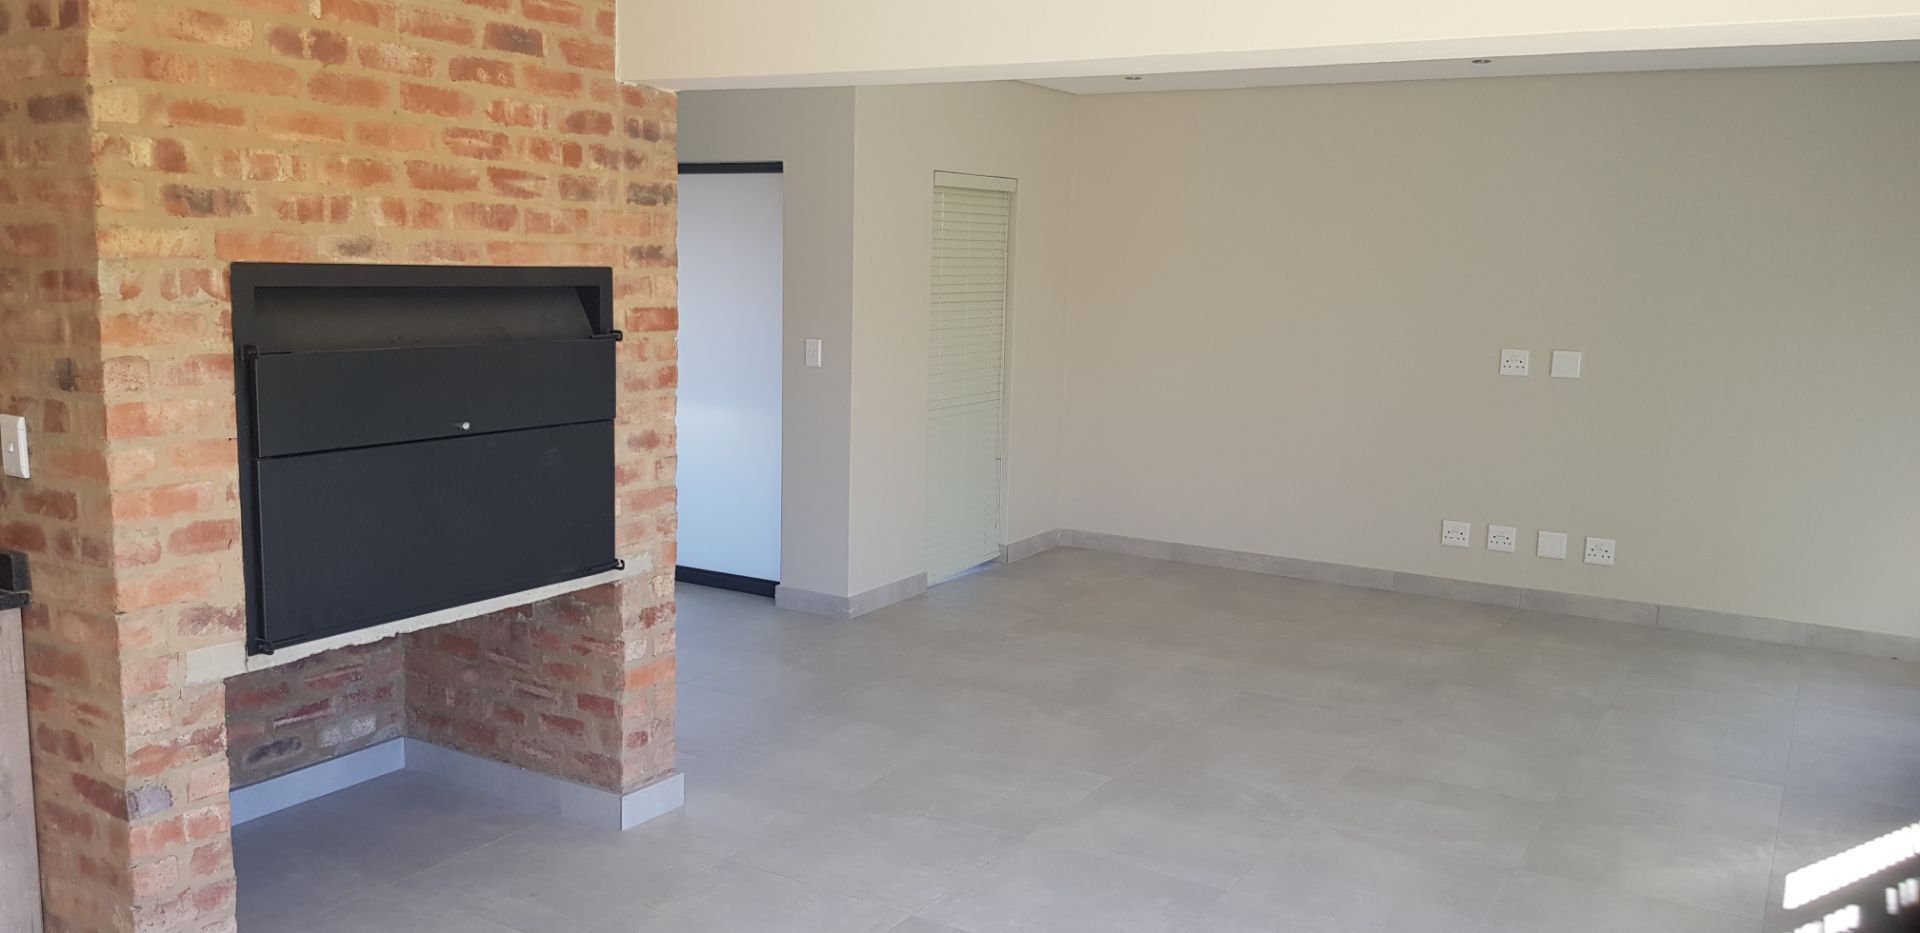 House in Lifestyle Estate - 20190712_111342.jpg